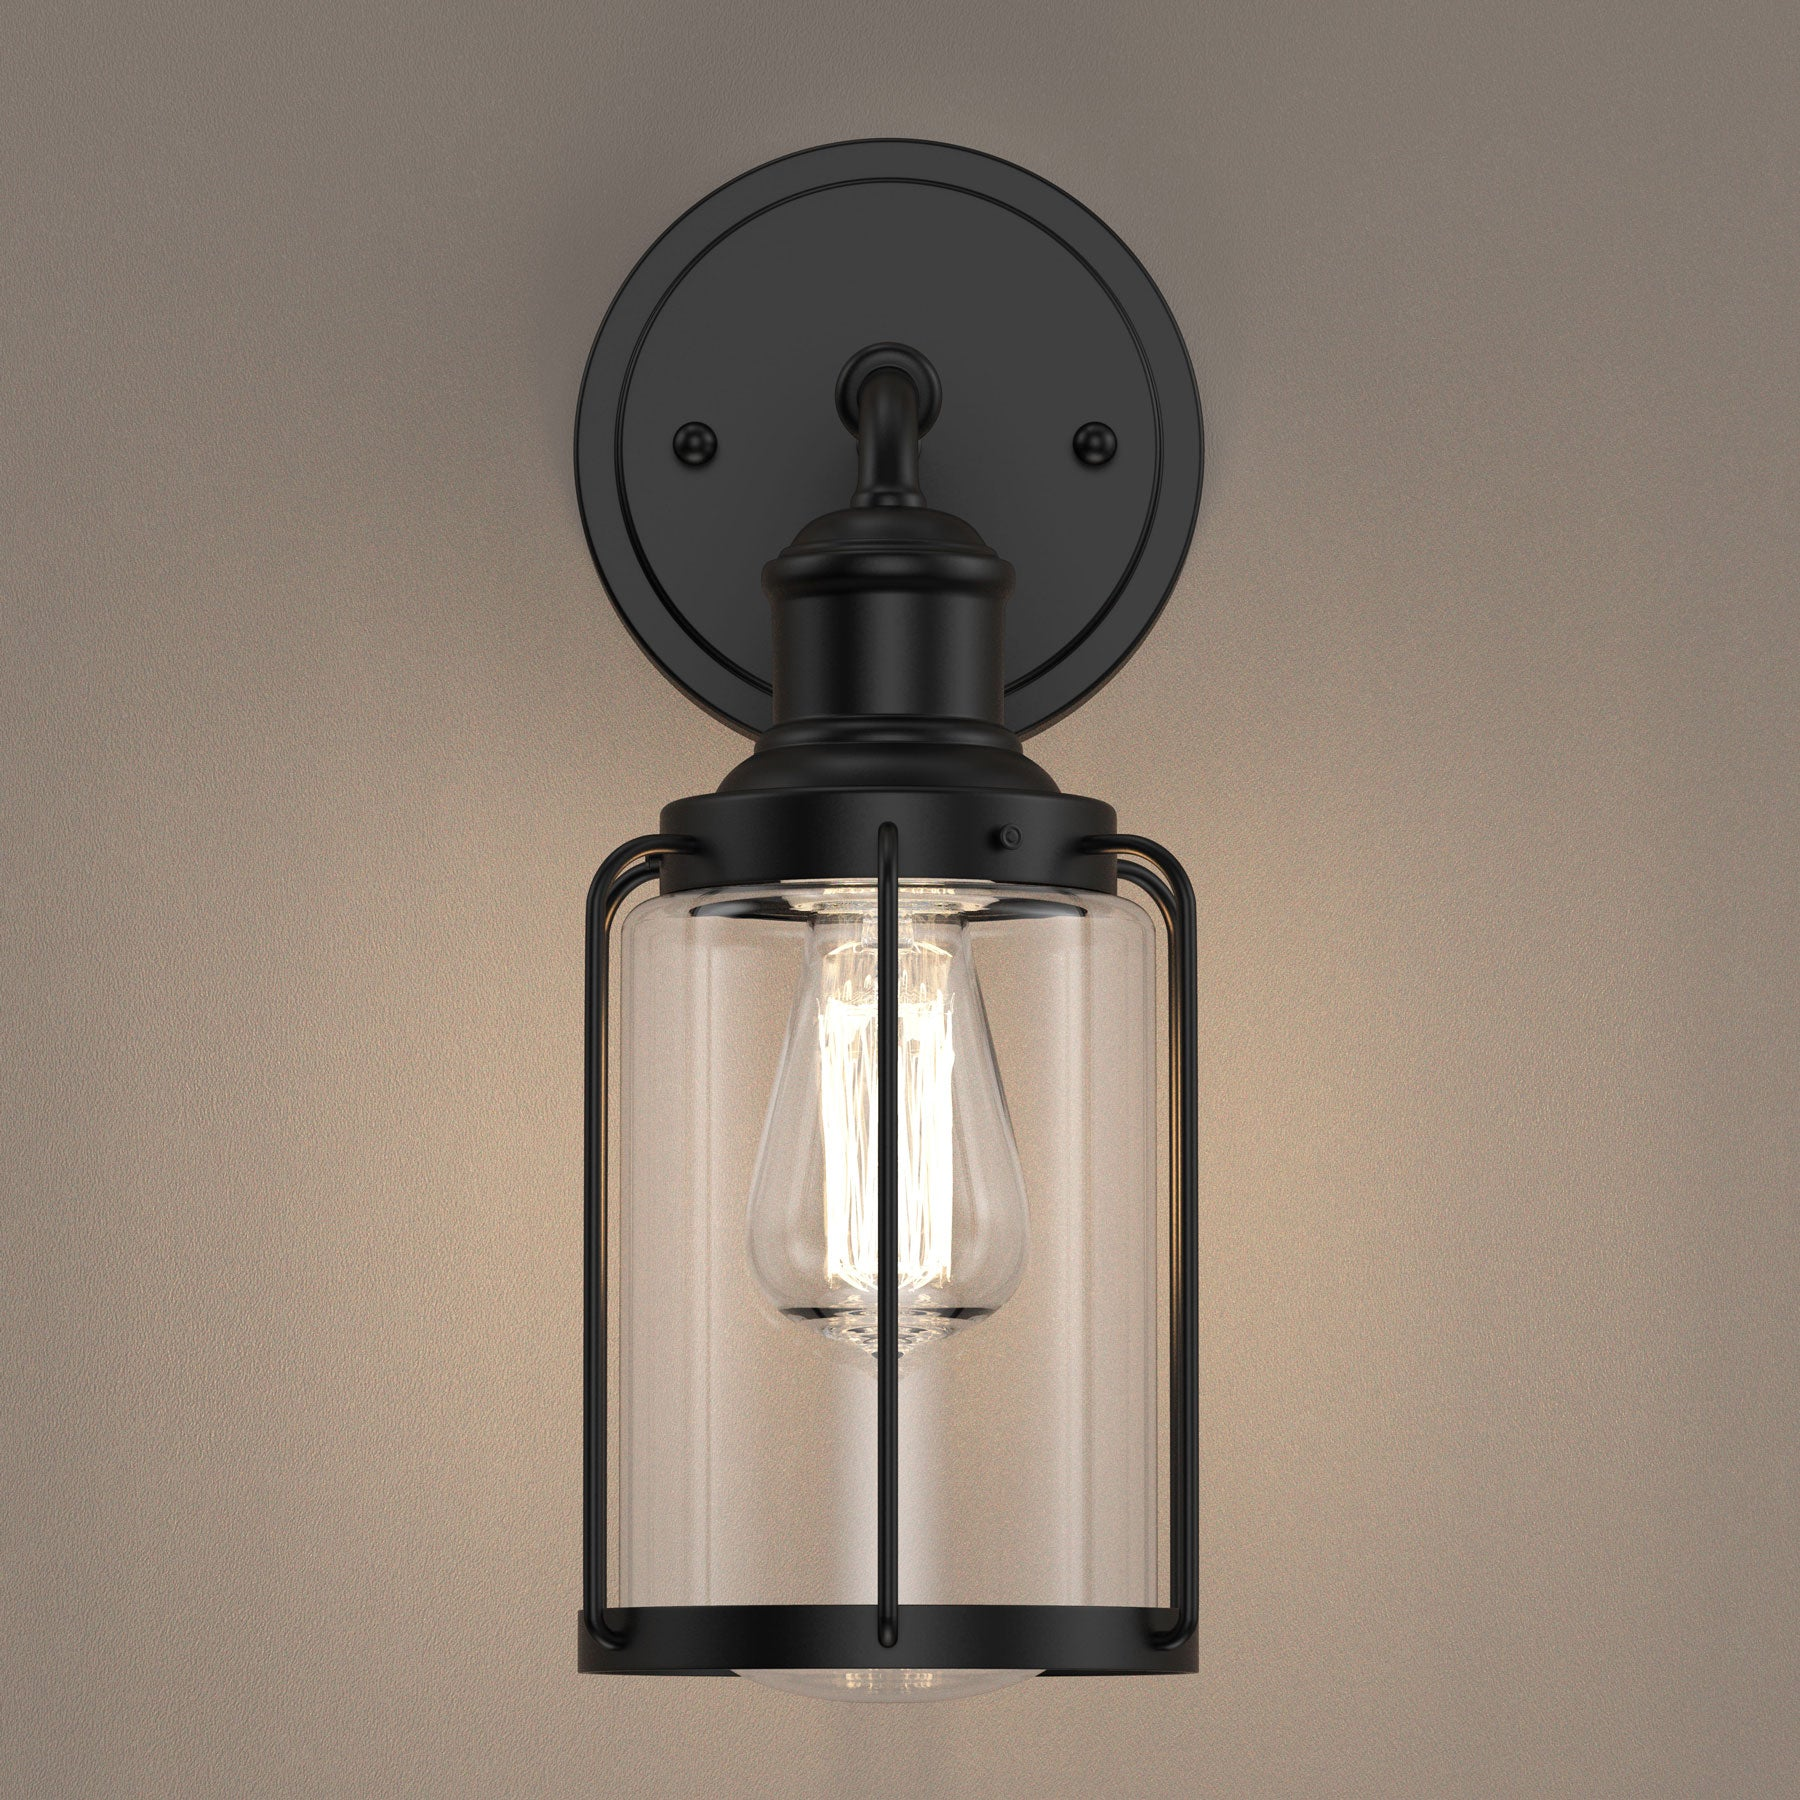 Birdcage Shape Vanity Light Fixture Matte Black With Clear Glass Shad Ledmyplace